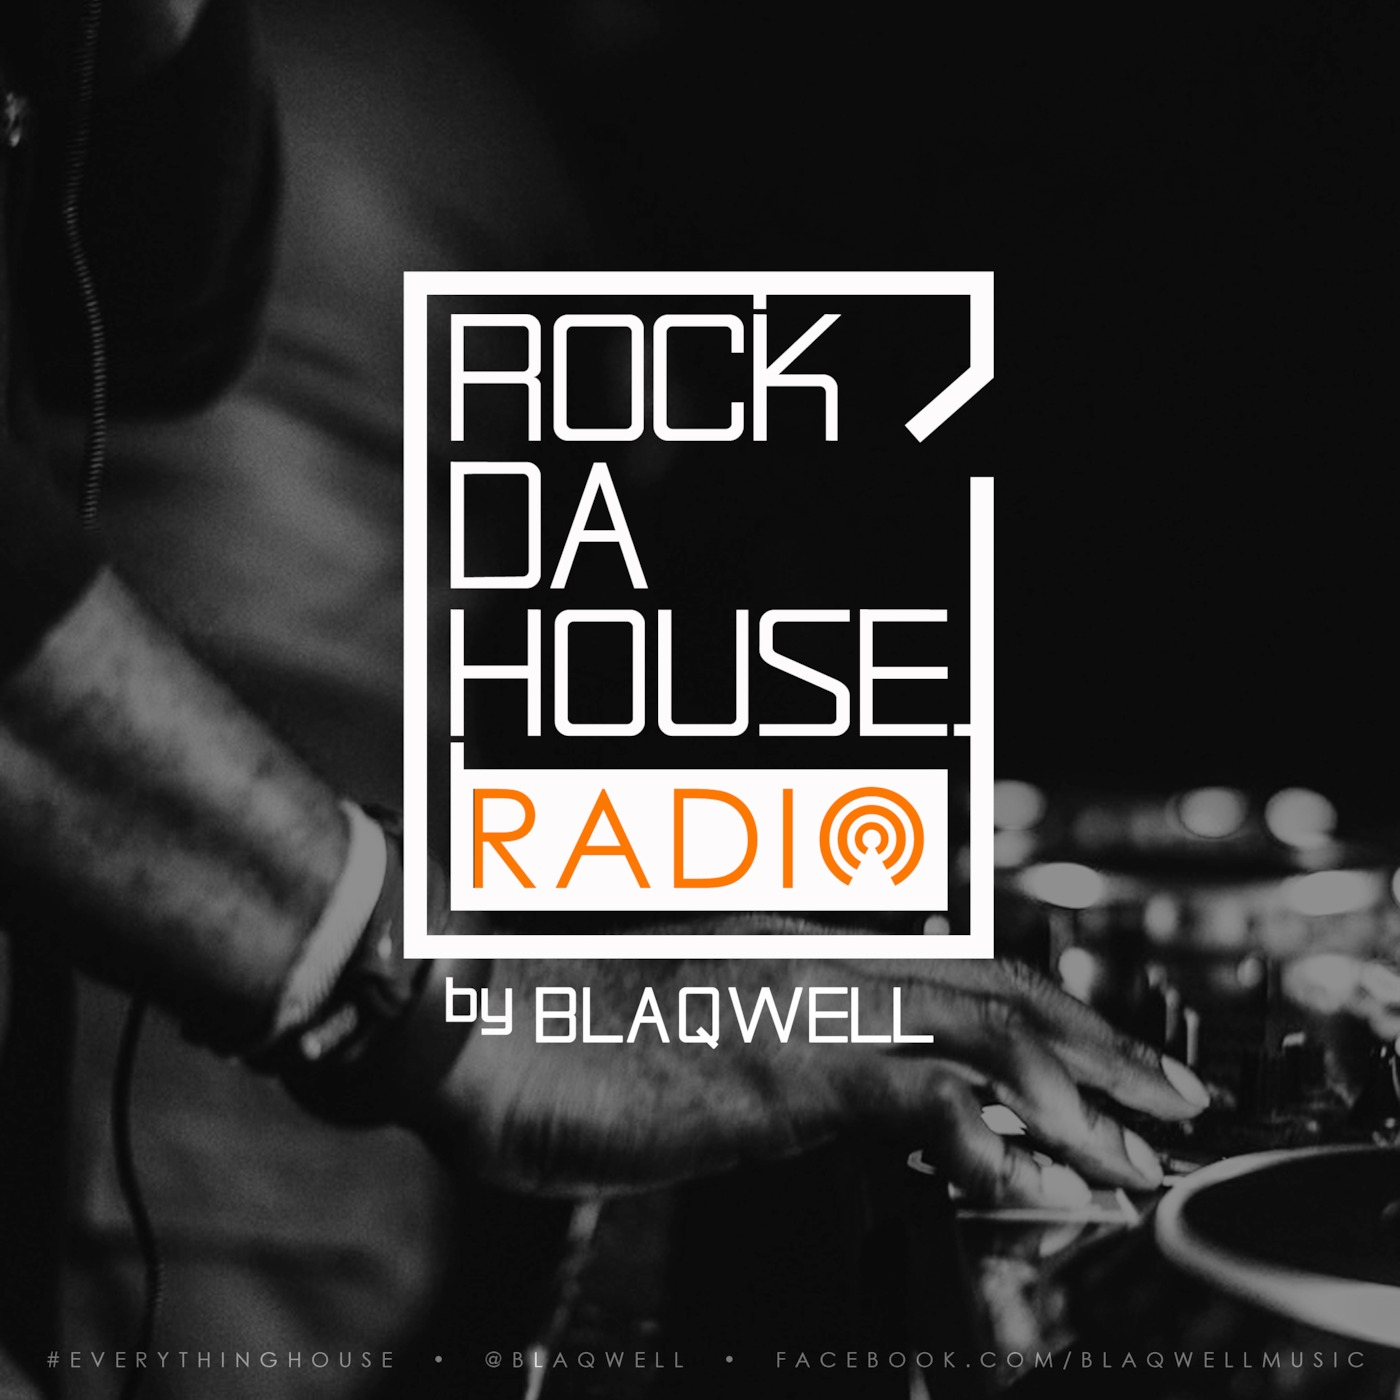 ROCK DA HOUSE RADIO by Blaqwell